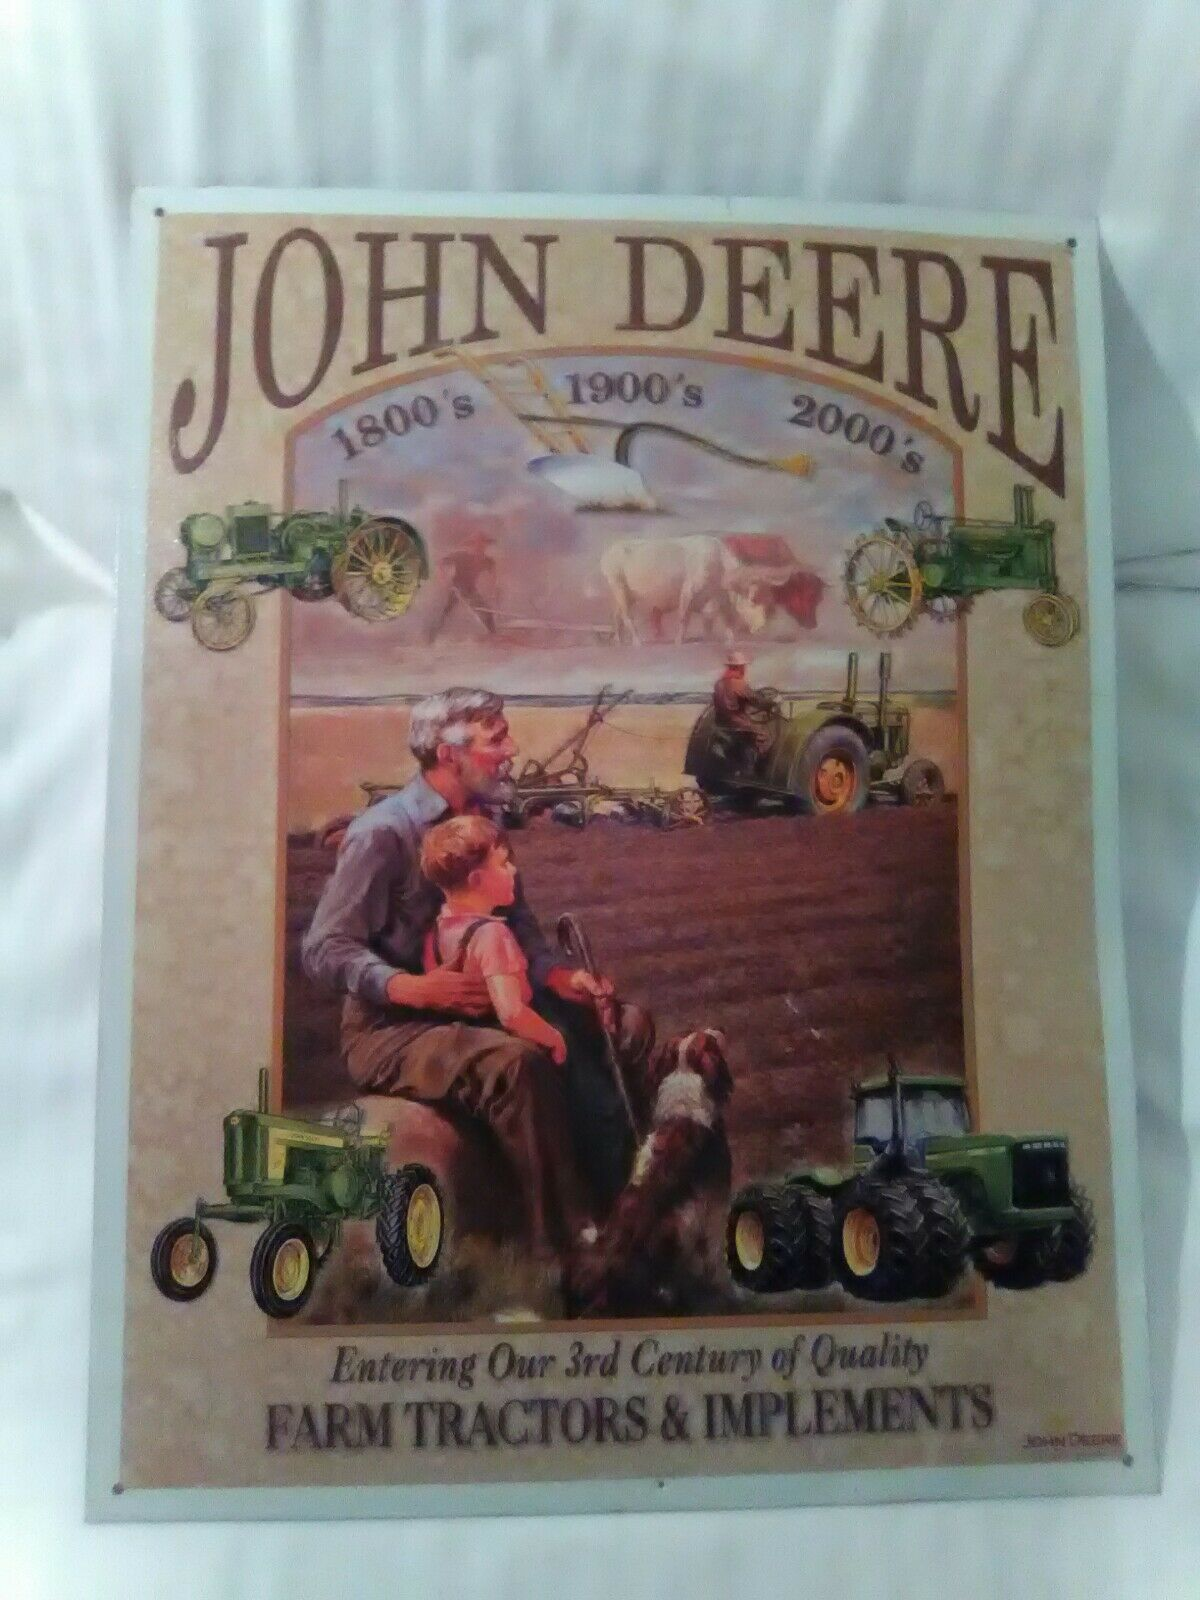 METAL DESPERATE ENTERPRISE ENTERPRISE ENTERPRISE CO. JOHN DEERE SIGN 601aa3